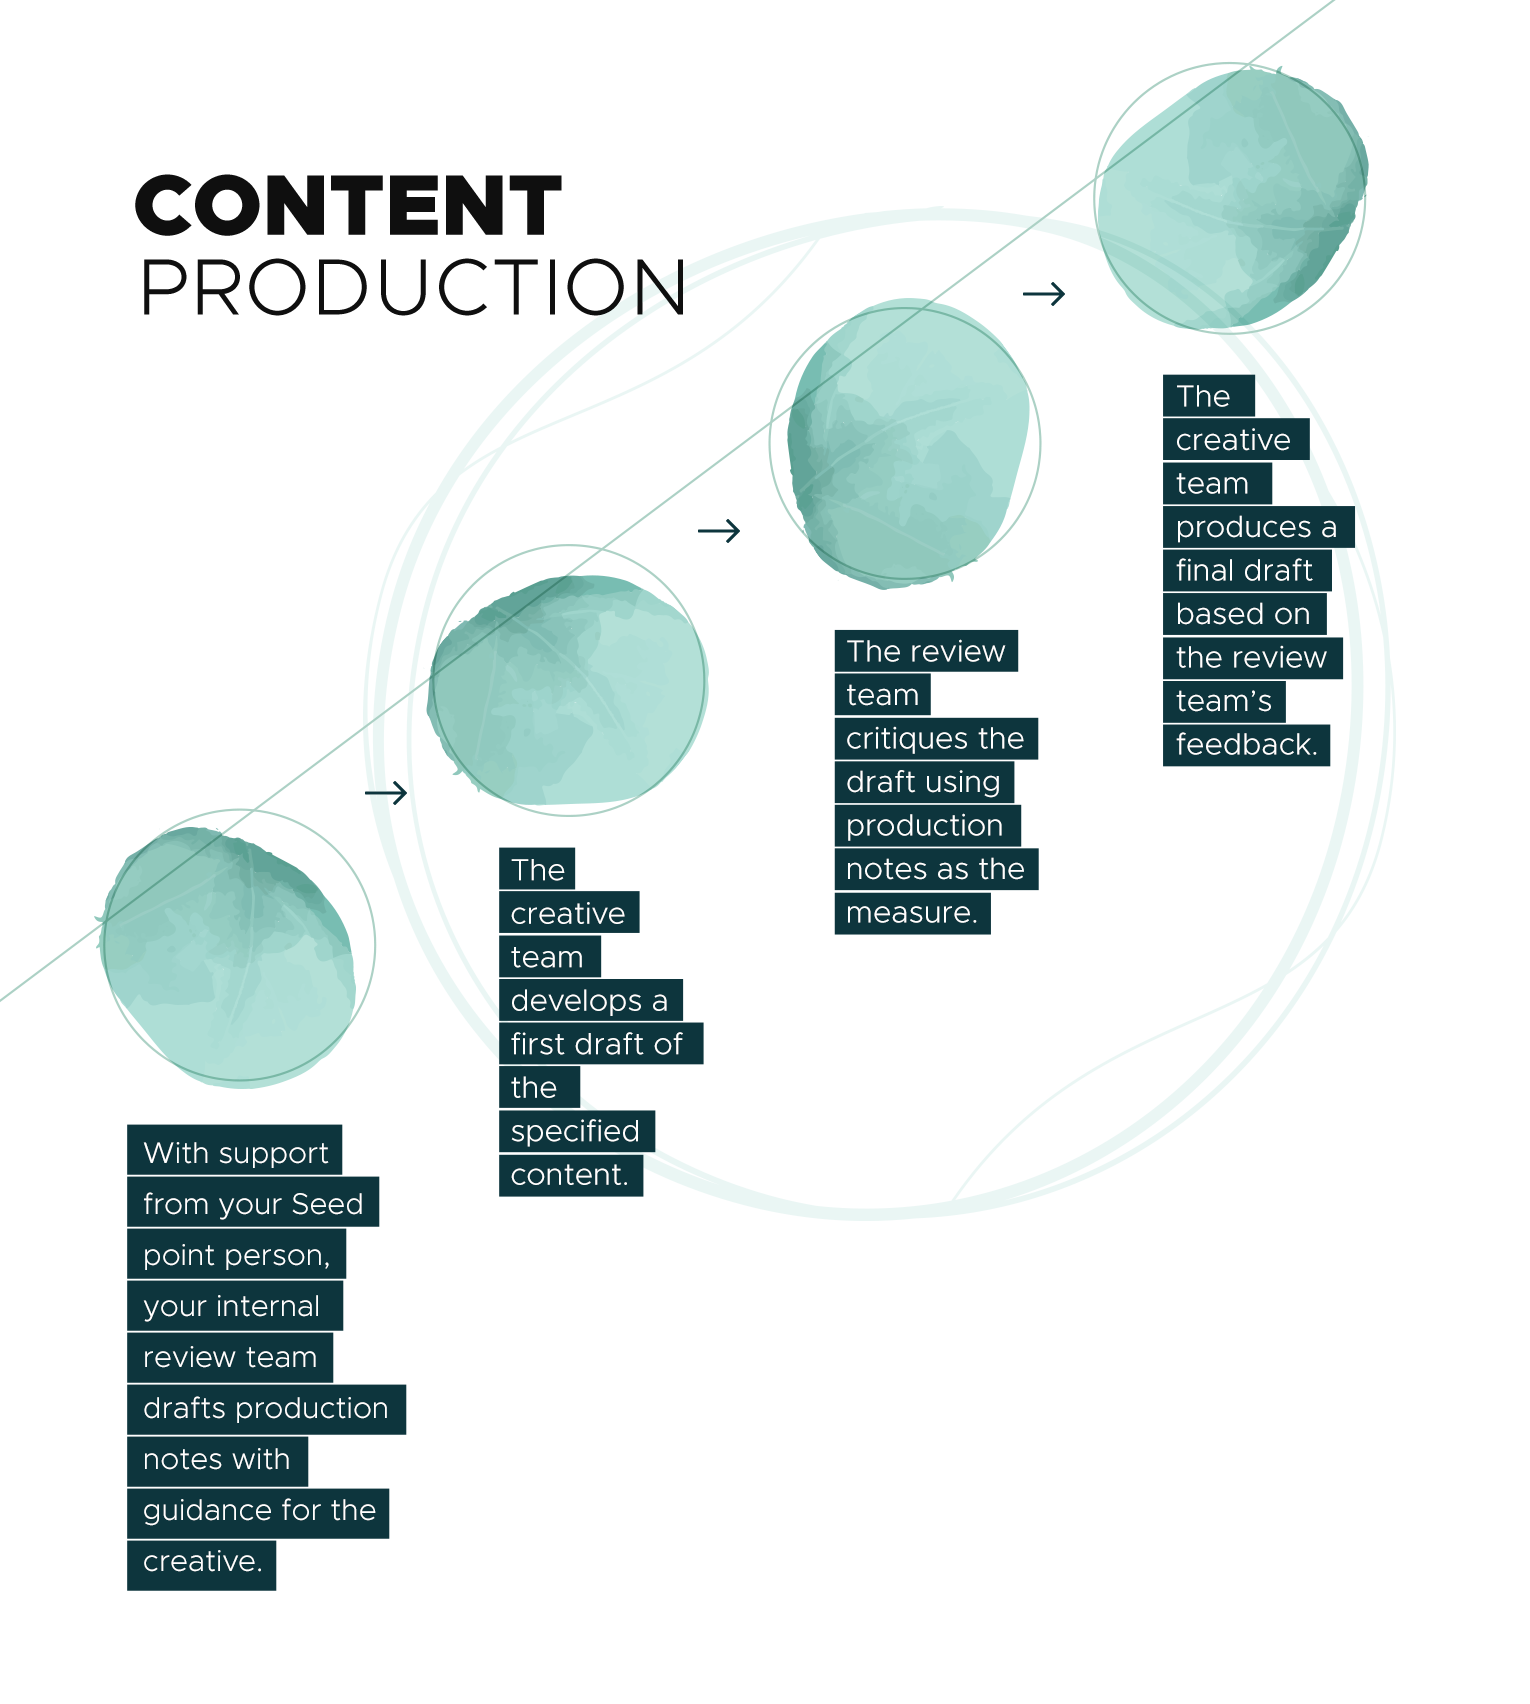 Seed Marketing Content Production